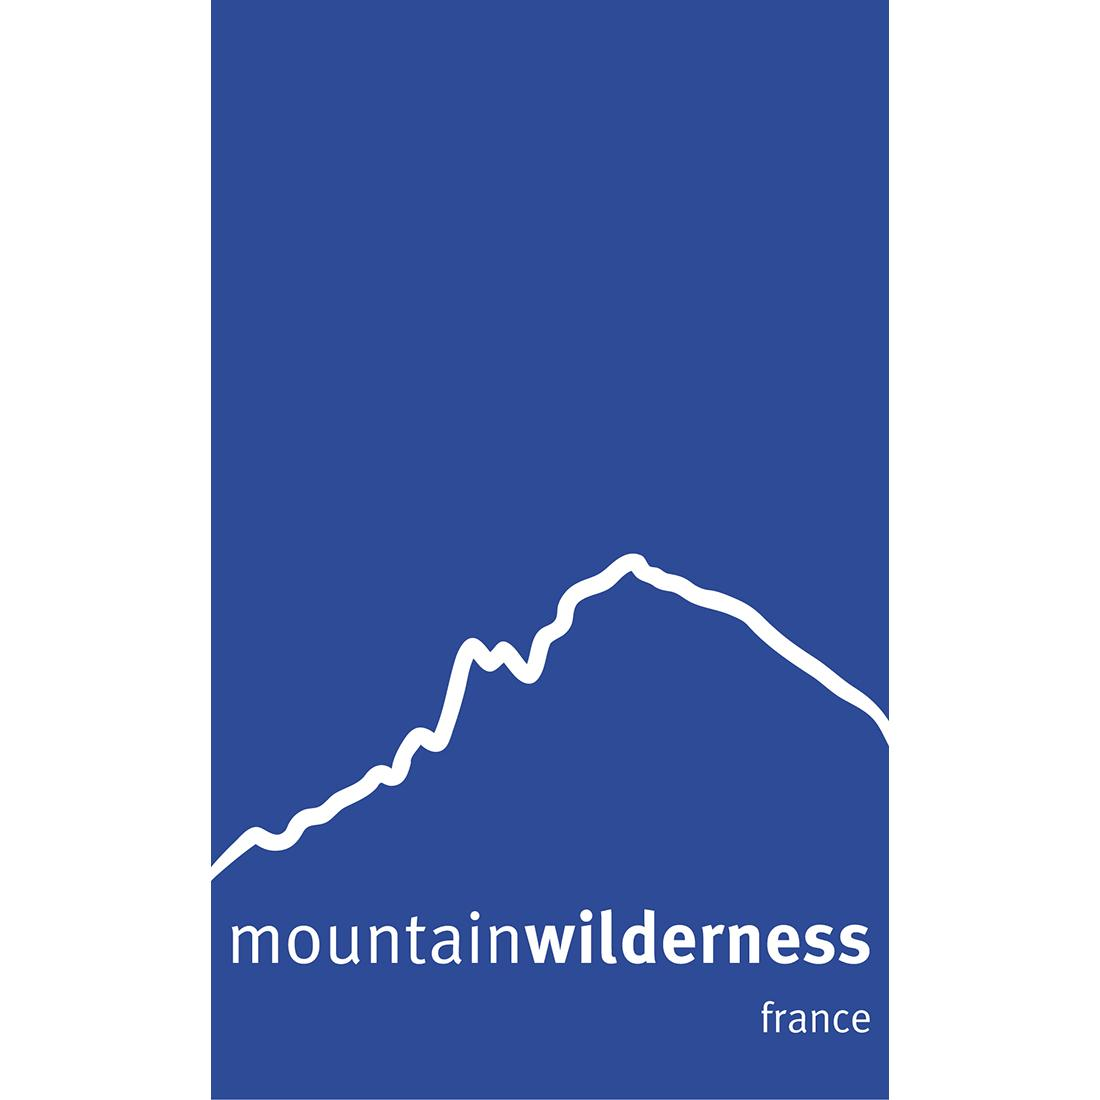 Mountain Wilderness France logo